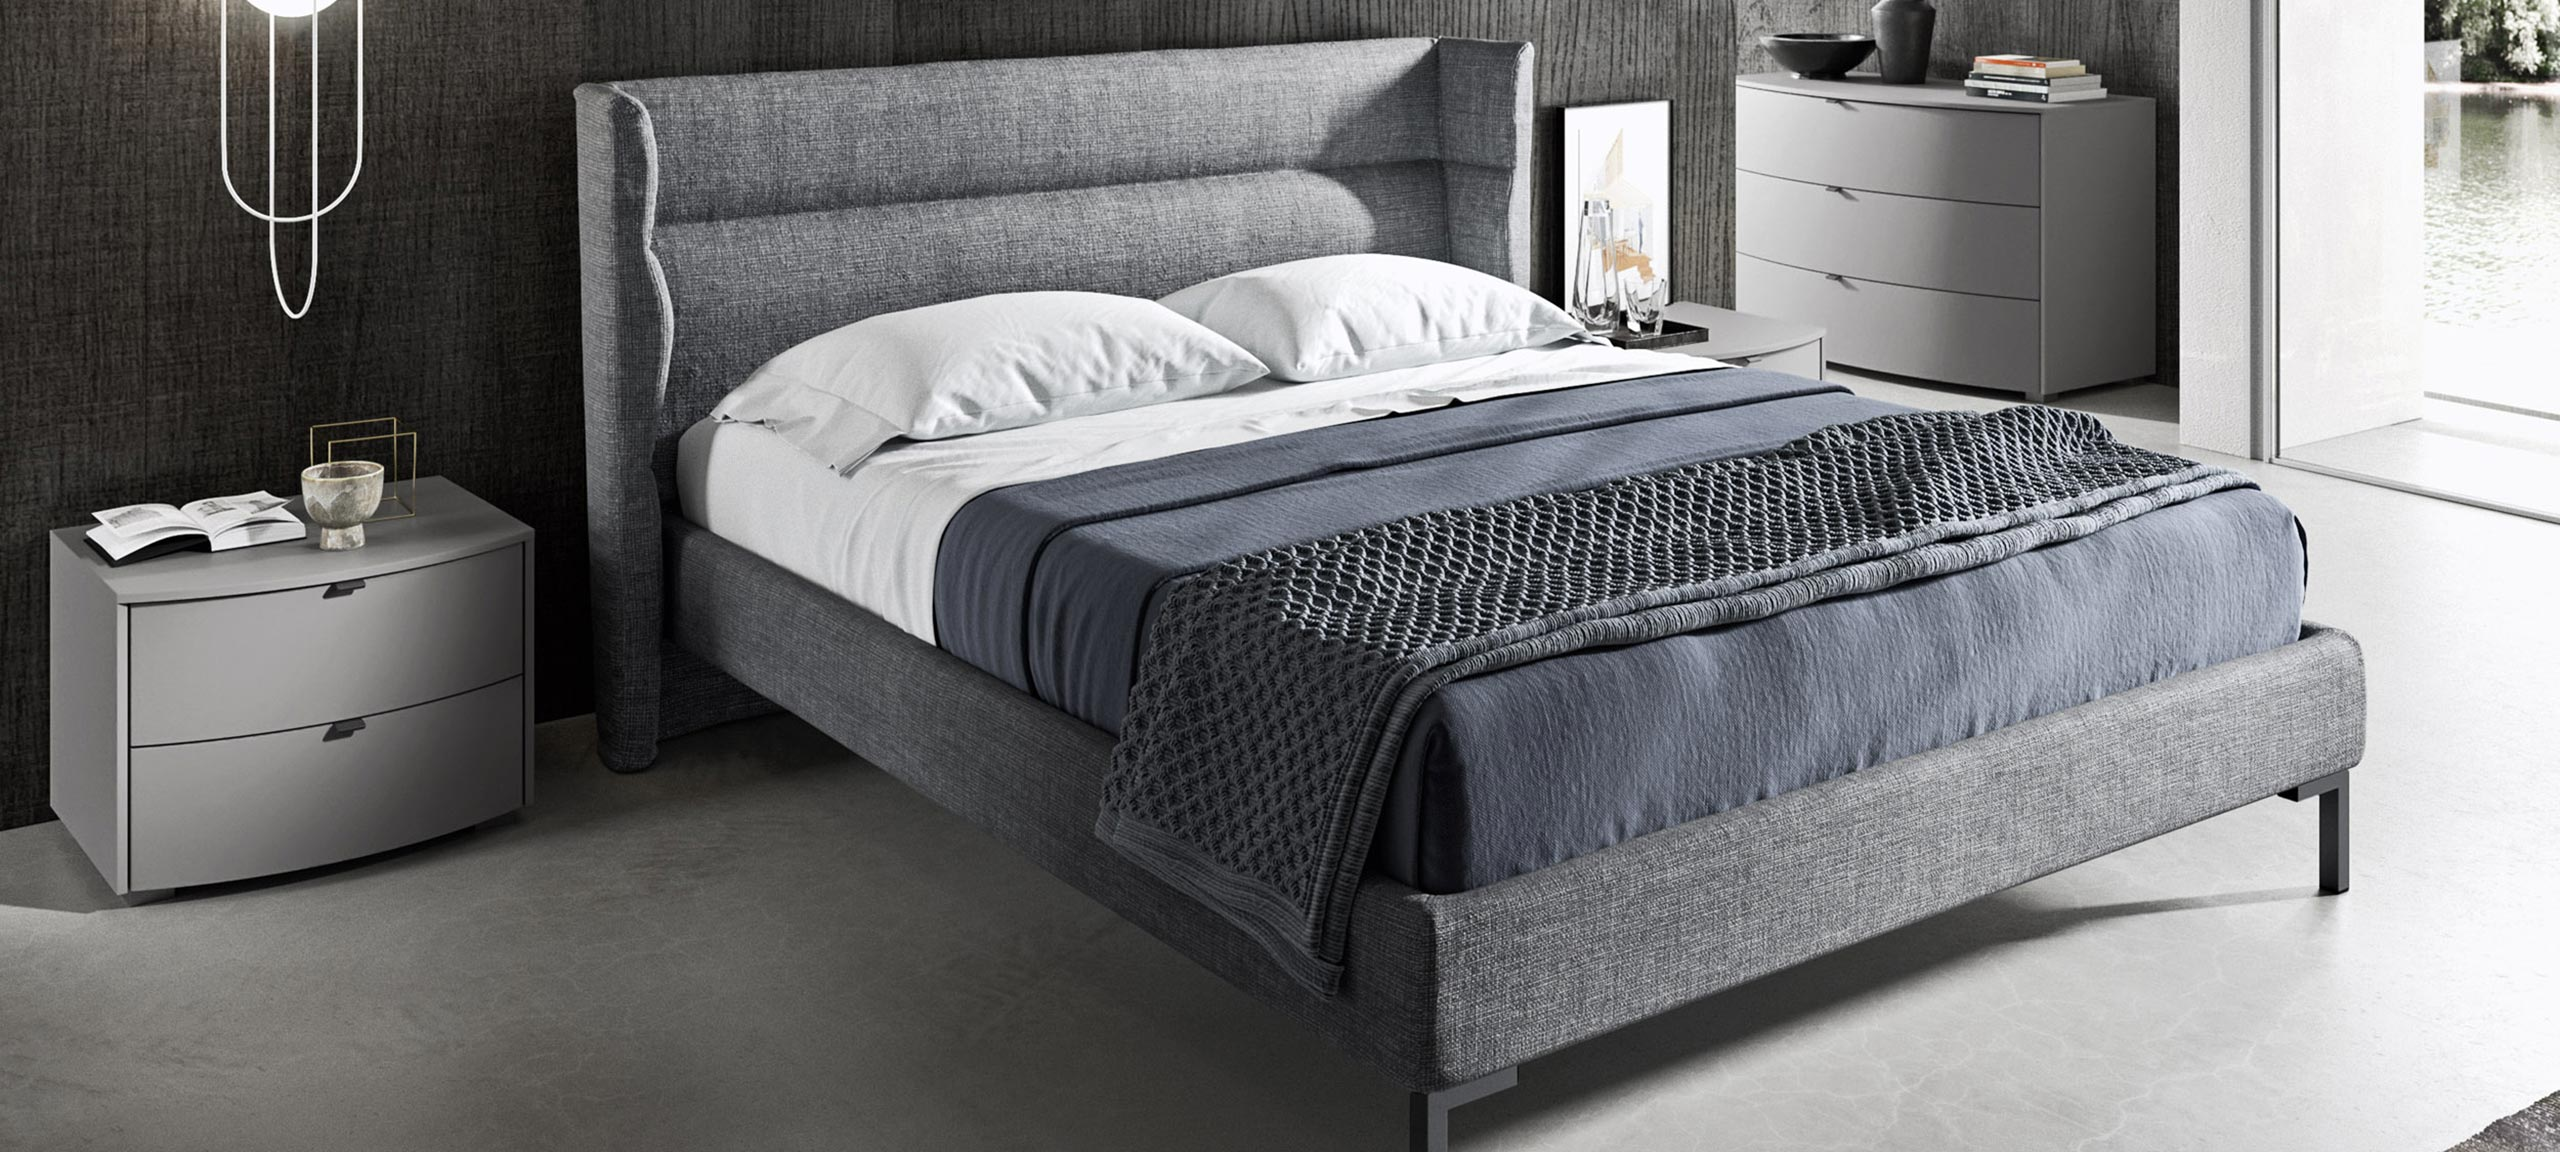 Contemporary style fabric and faux leather lined double bed 4